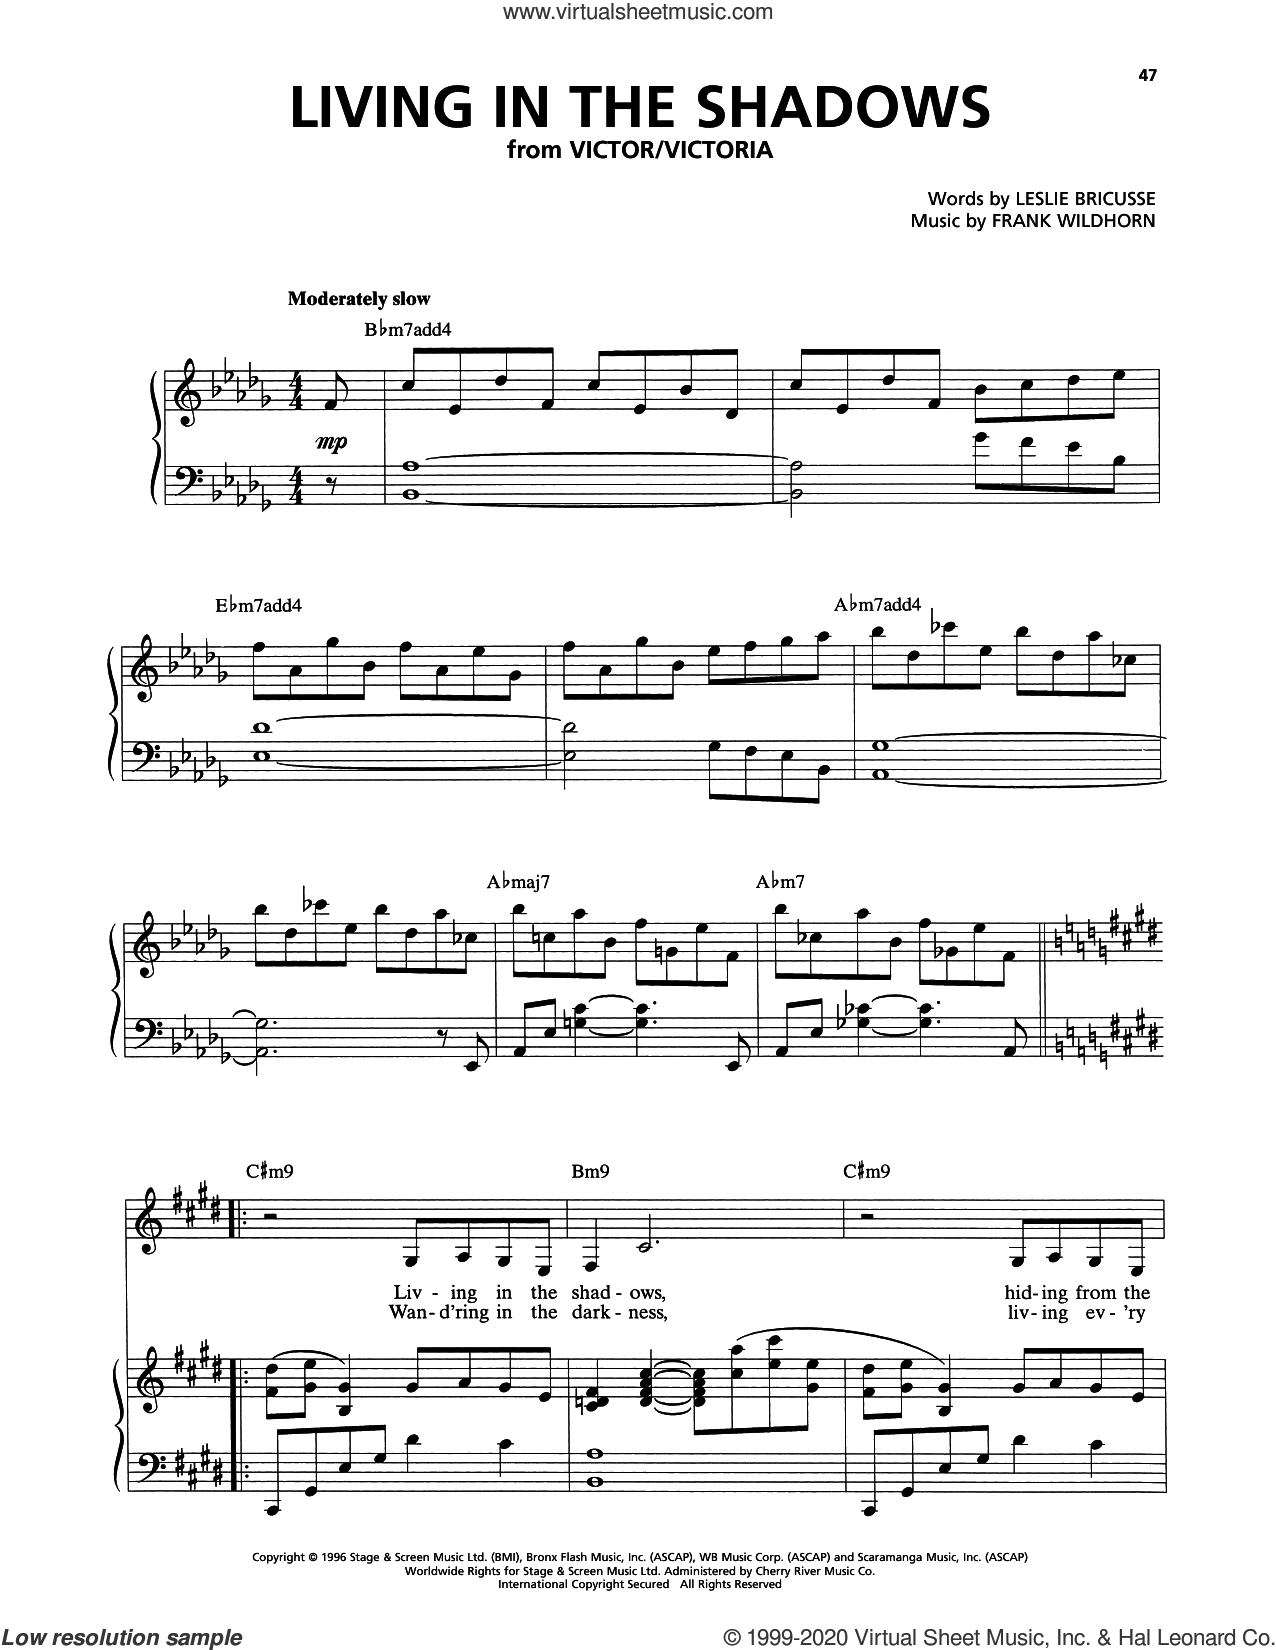 Living In The Shadows (from Victor/Victoria) sheet music for voice, piano or guitar by Leslie Bricusse, Frank Wildhorn and Leslie Bricusse and Frank Wildhorn, intermediate skill level